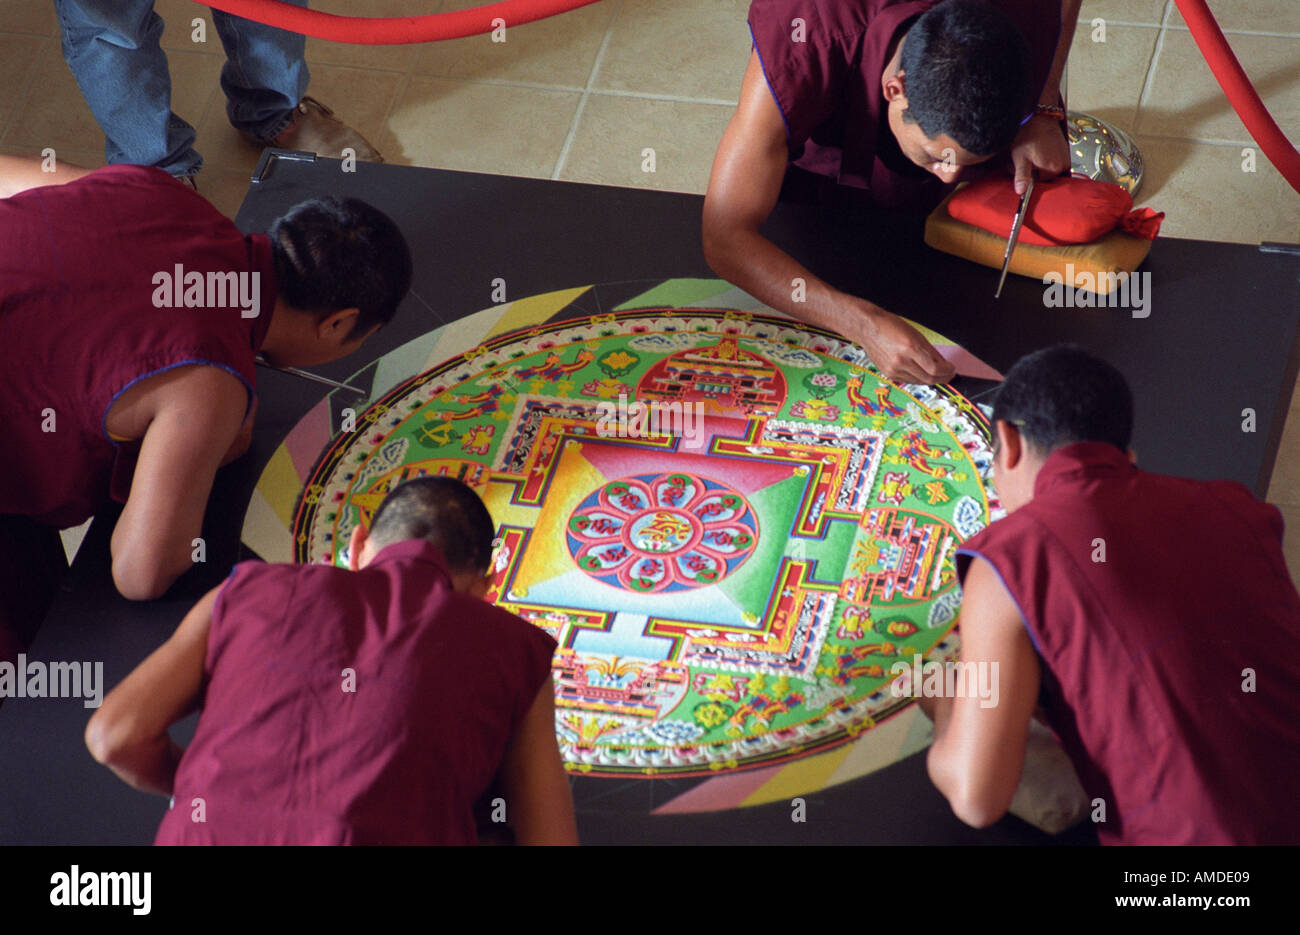 Four monks work on a nearly completed mandala - Stock Image